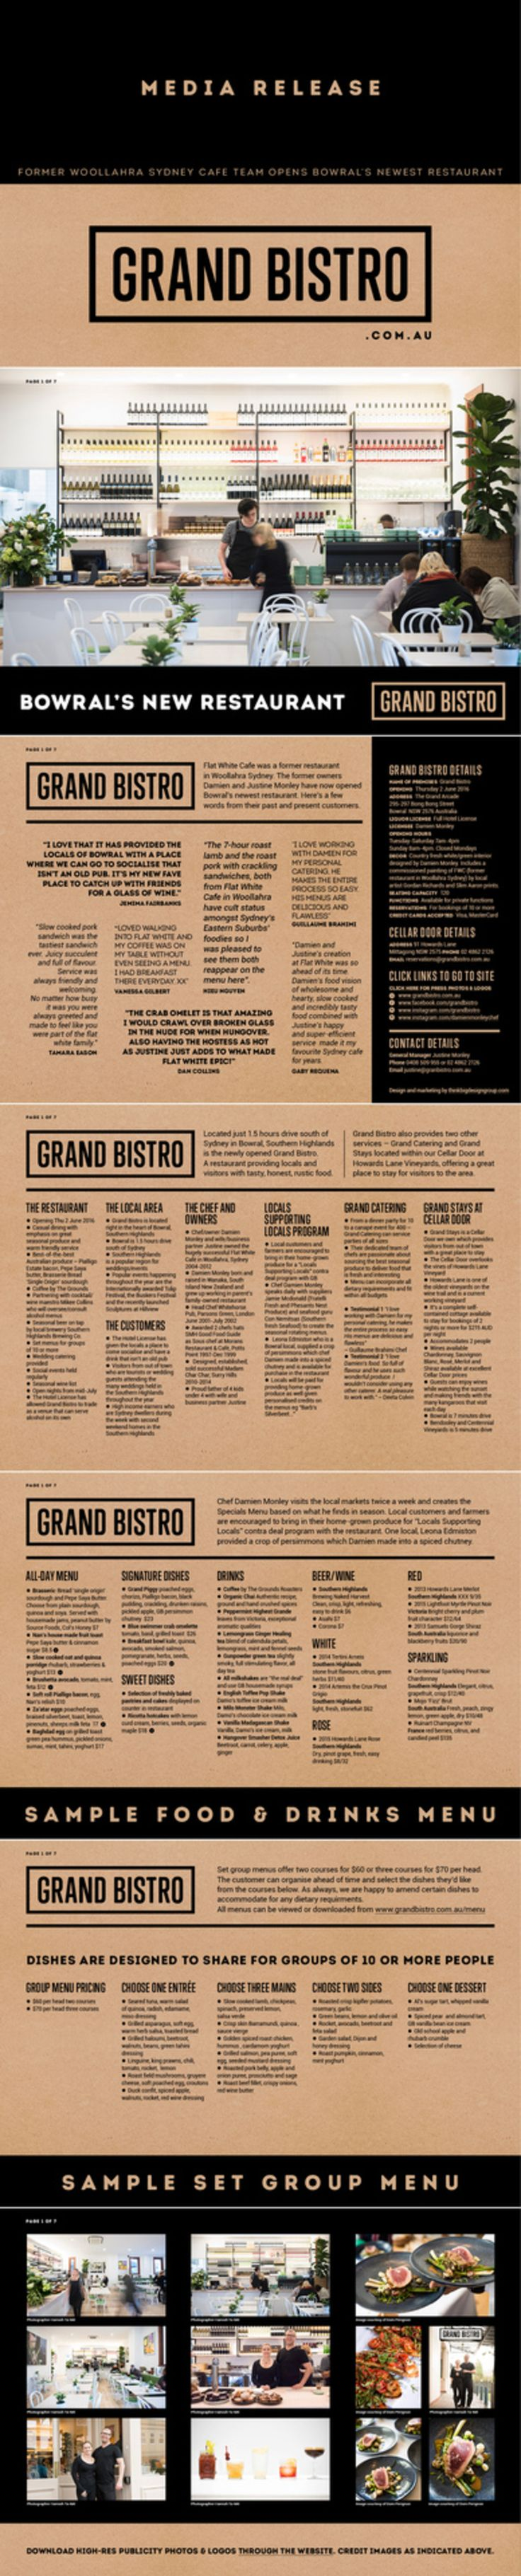 A restaurant media release  /press release / press kit for Grand Bistro in Australia produced by thinkbigdesigngroup.com